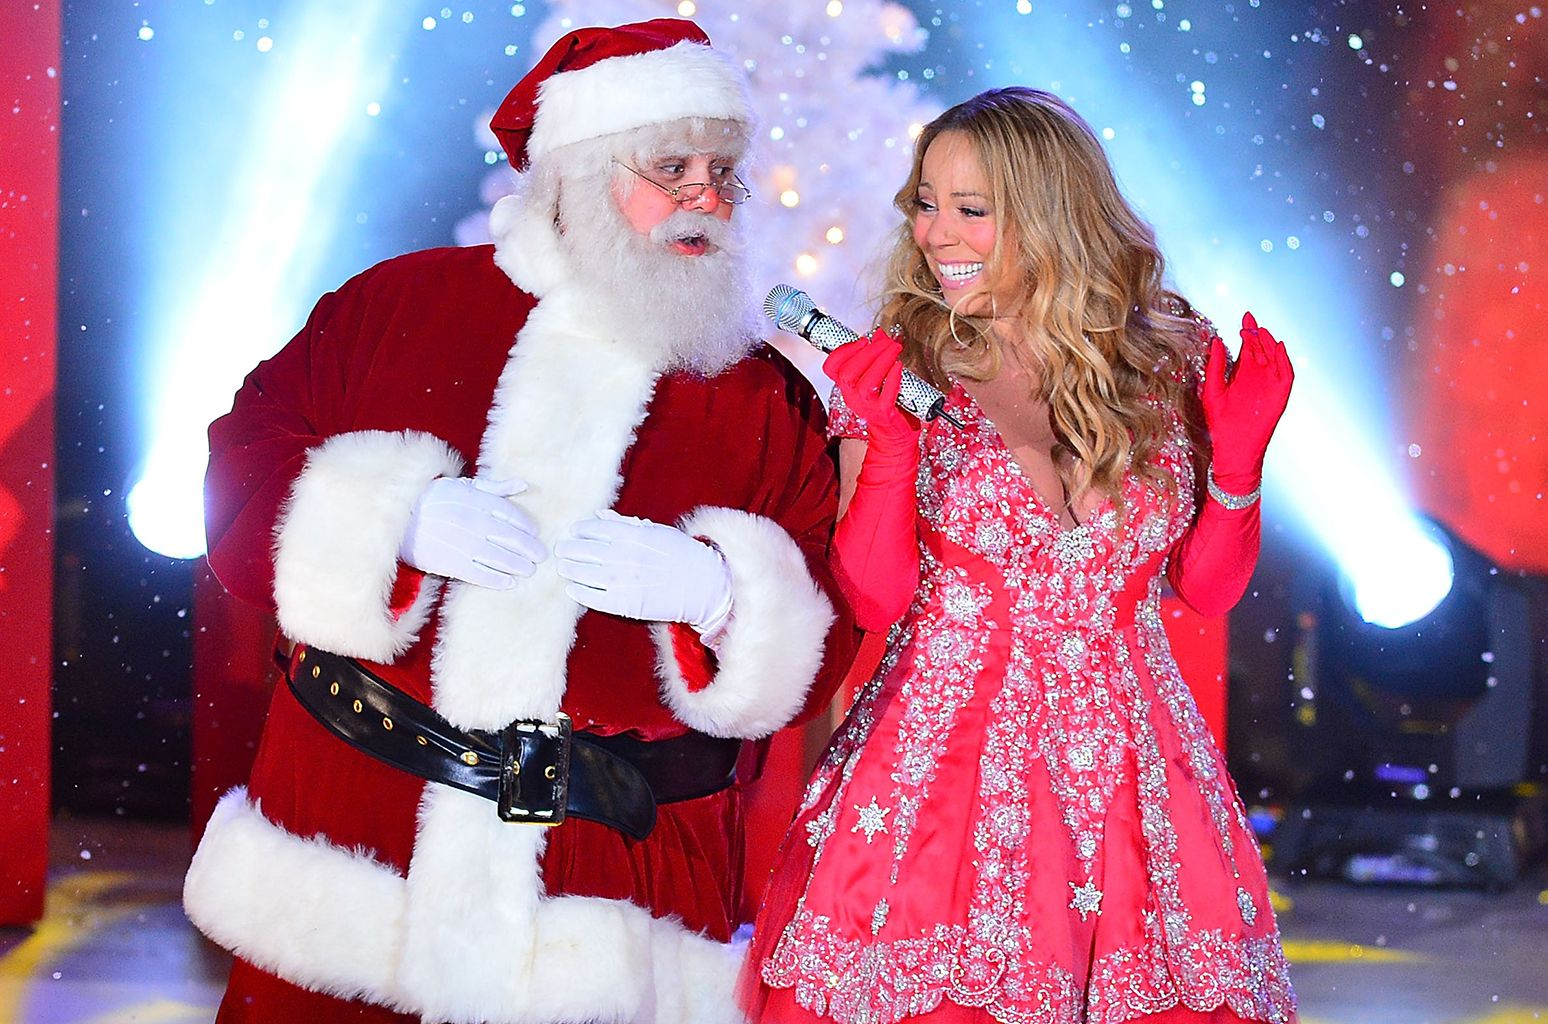 Mariah Carey S All I Want For Christmas Is You Is Highest Charting Billboard Hot 100 Holiday Hit In 60 Years Holiday Pops Christmas Song Billboard Hot 100